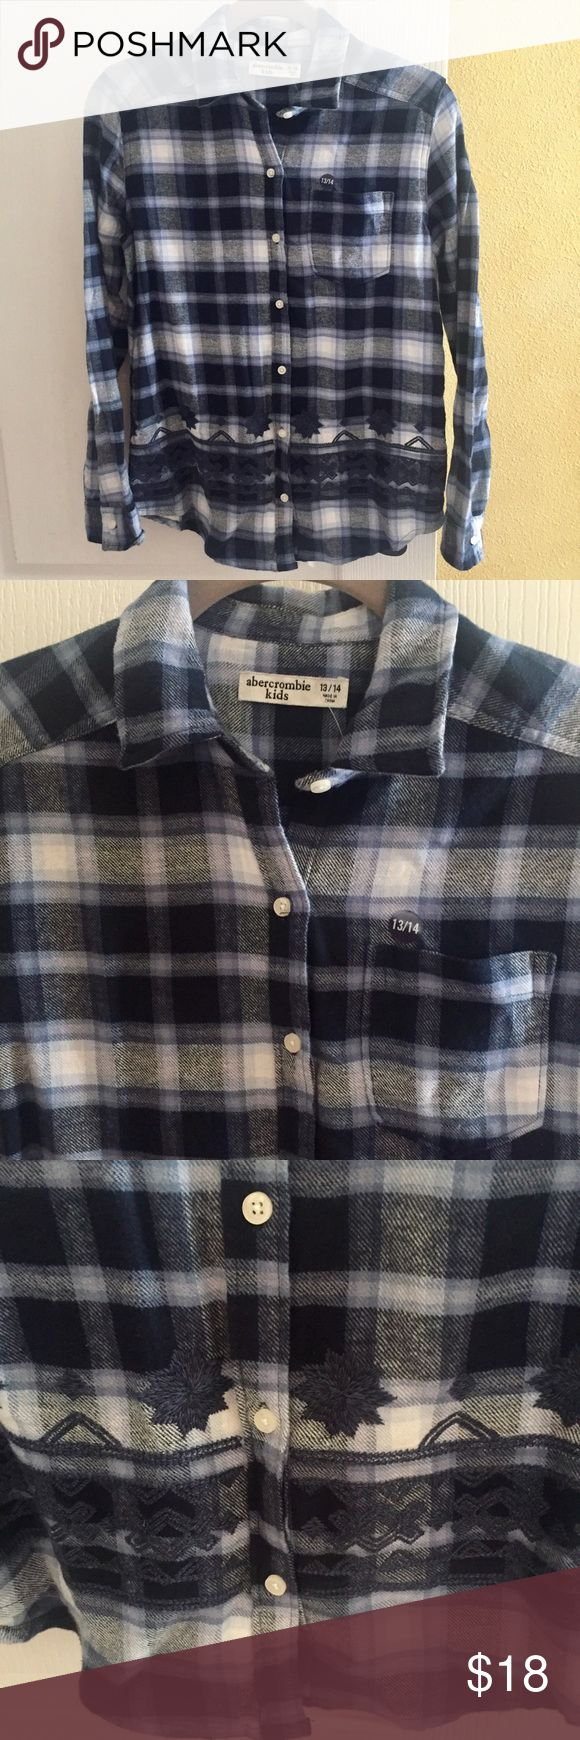 Abercrombie Kids girls NWT flannel plaid top LS Abercrombie Kids NWT girls size 13/14 cotton blue plaid flannel shirt. Button down style with embroidery detail along the bottom. Nice and soft from a smoke free home. Abercombie Kids Shirts & Tops Button Down Shirts